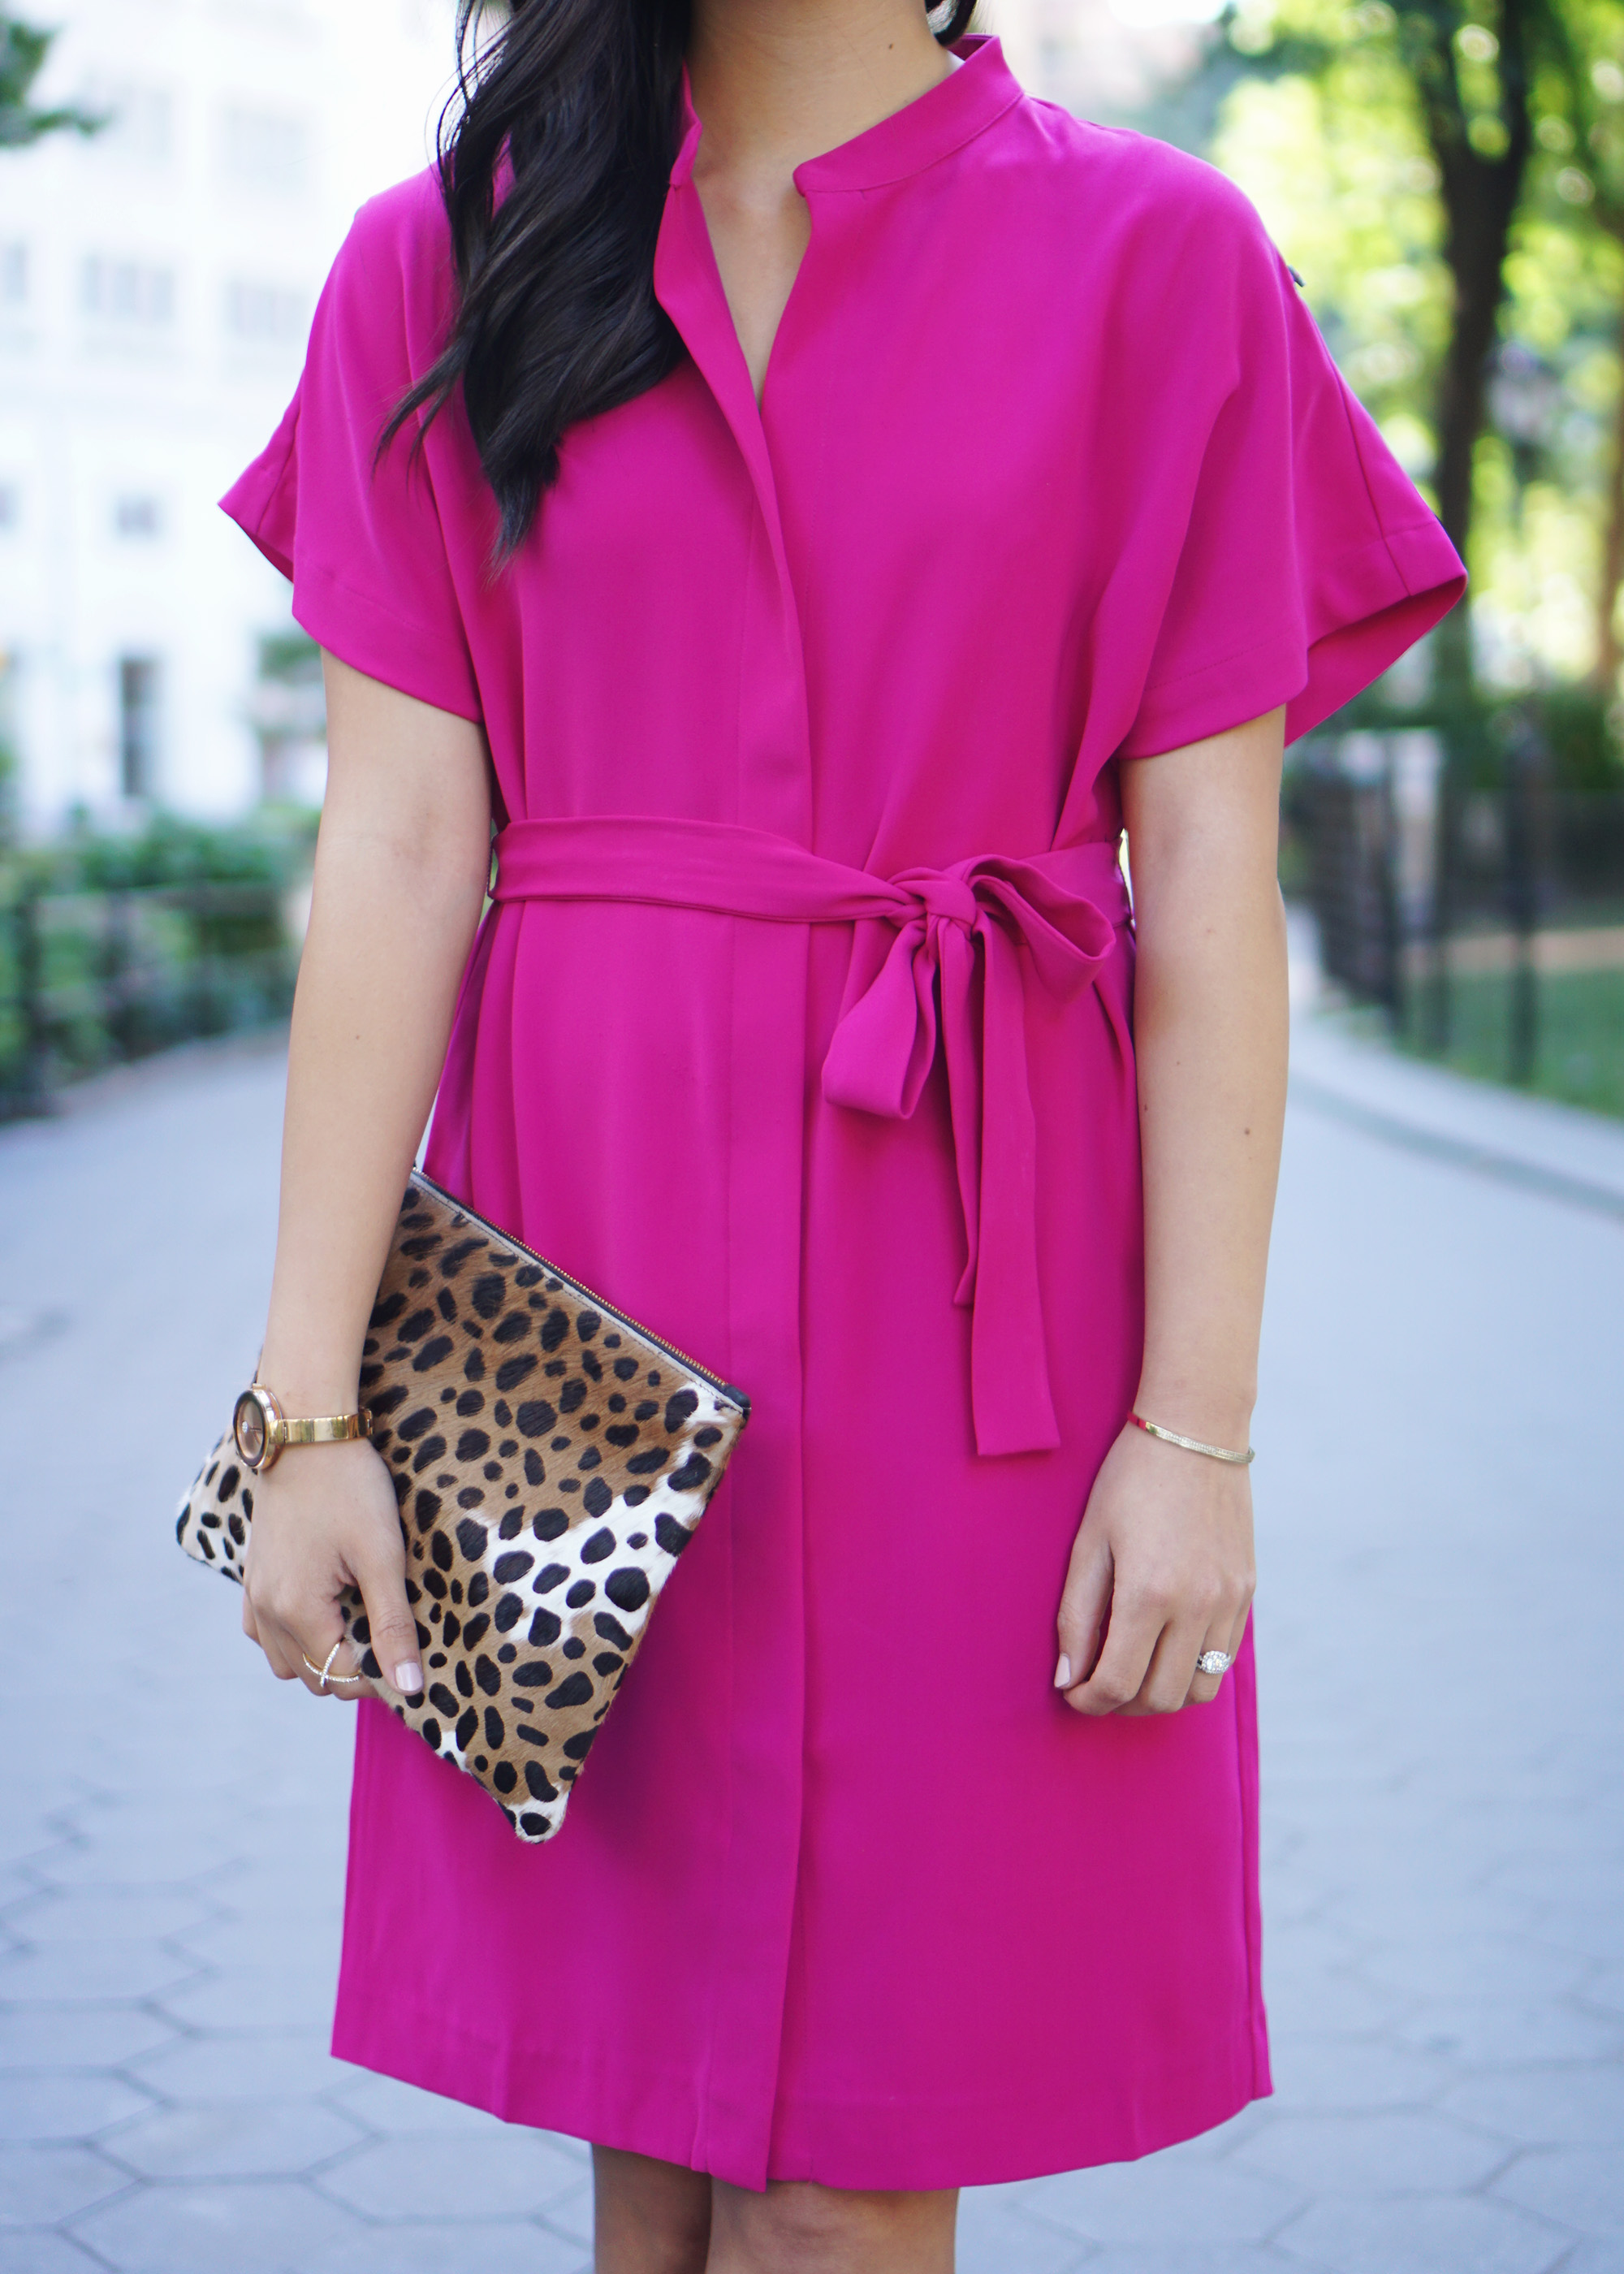 Bright Fuschia Dress and Leopard Clutch